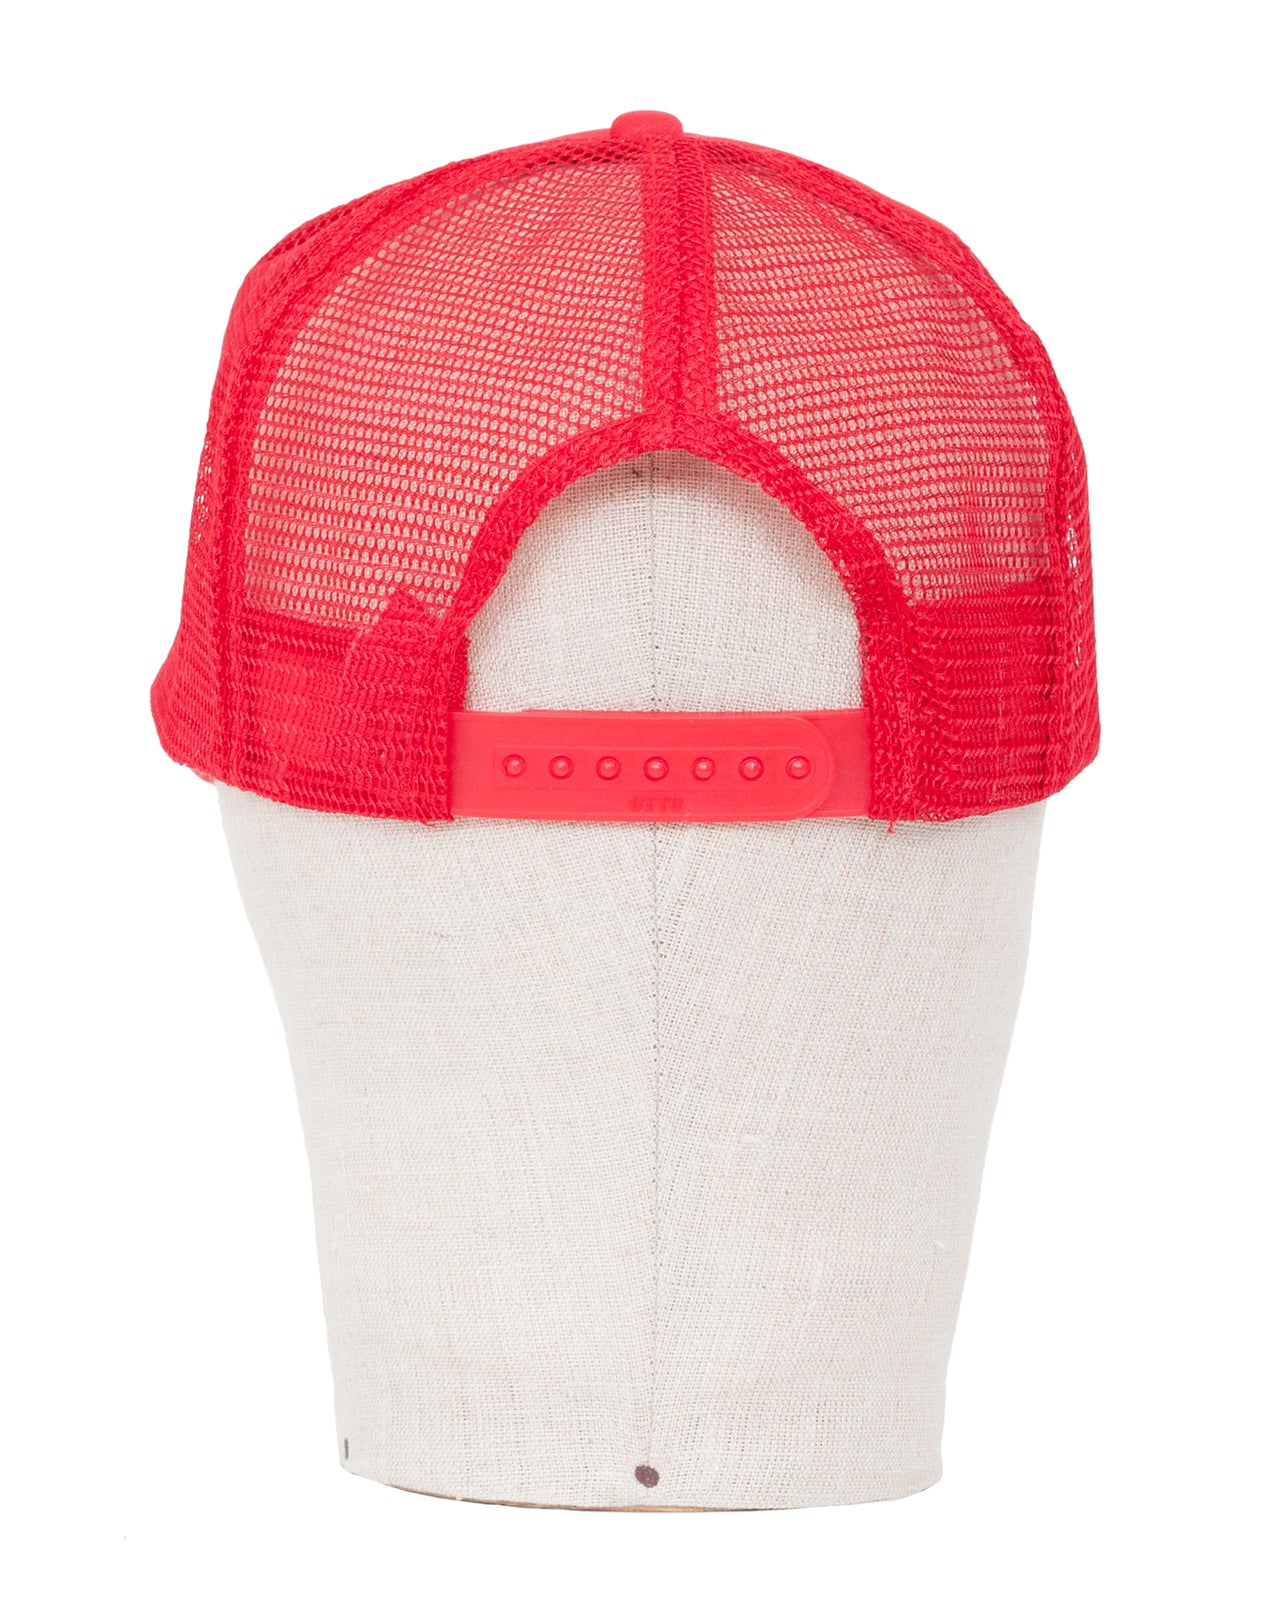 Weirdo Mesh Cap, Ringing Circus, Red